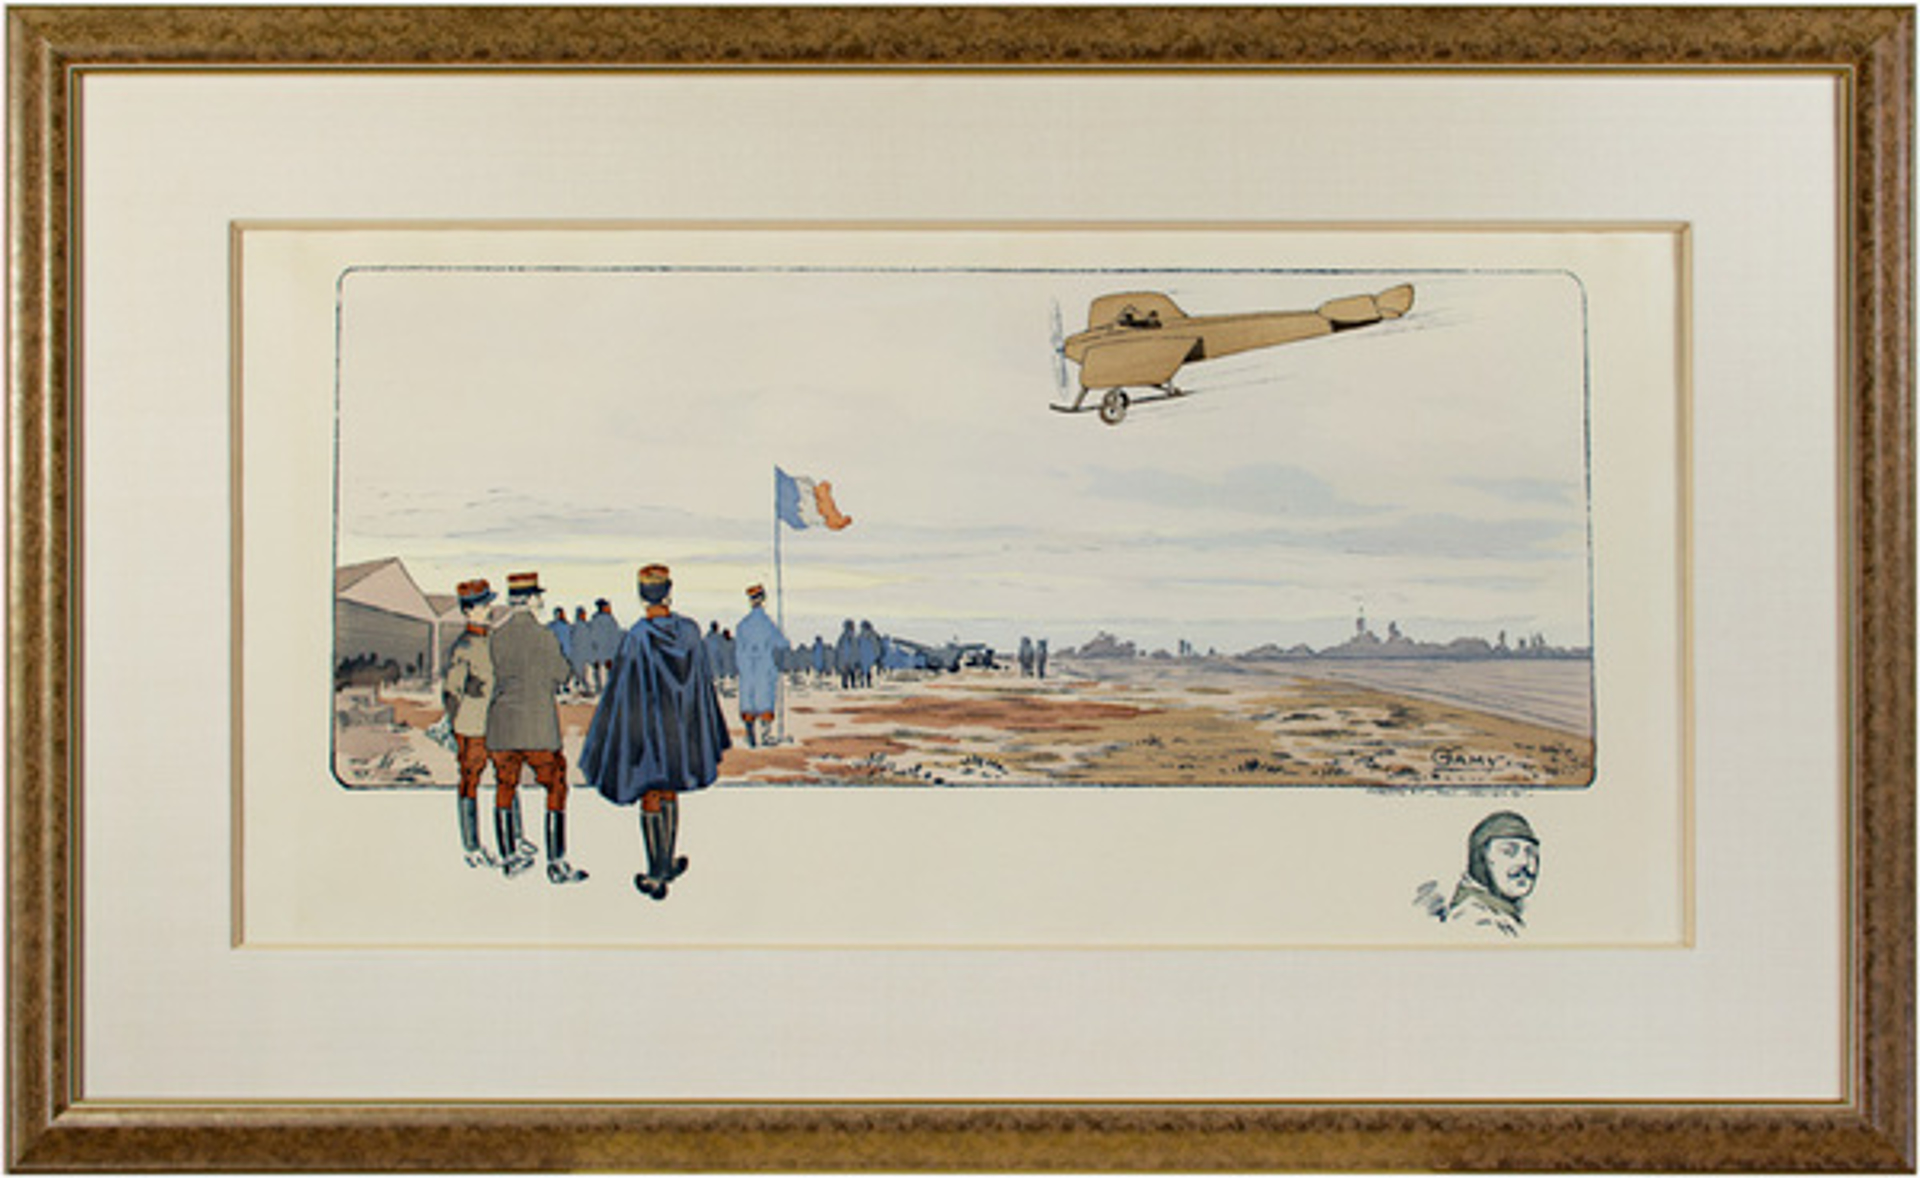 French Air Show With Remarque of Head of Pilot by Marguerite Montaut (GAMY)